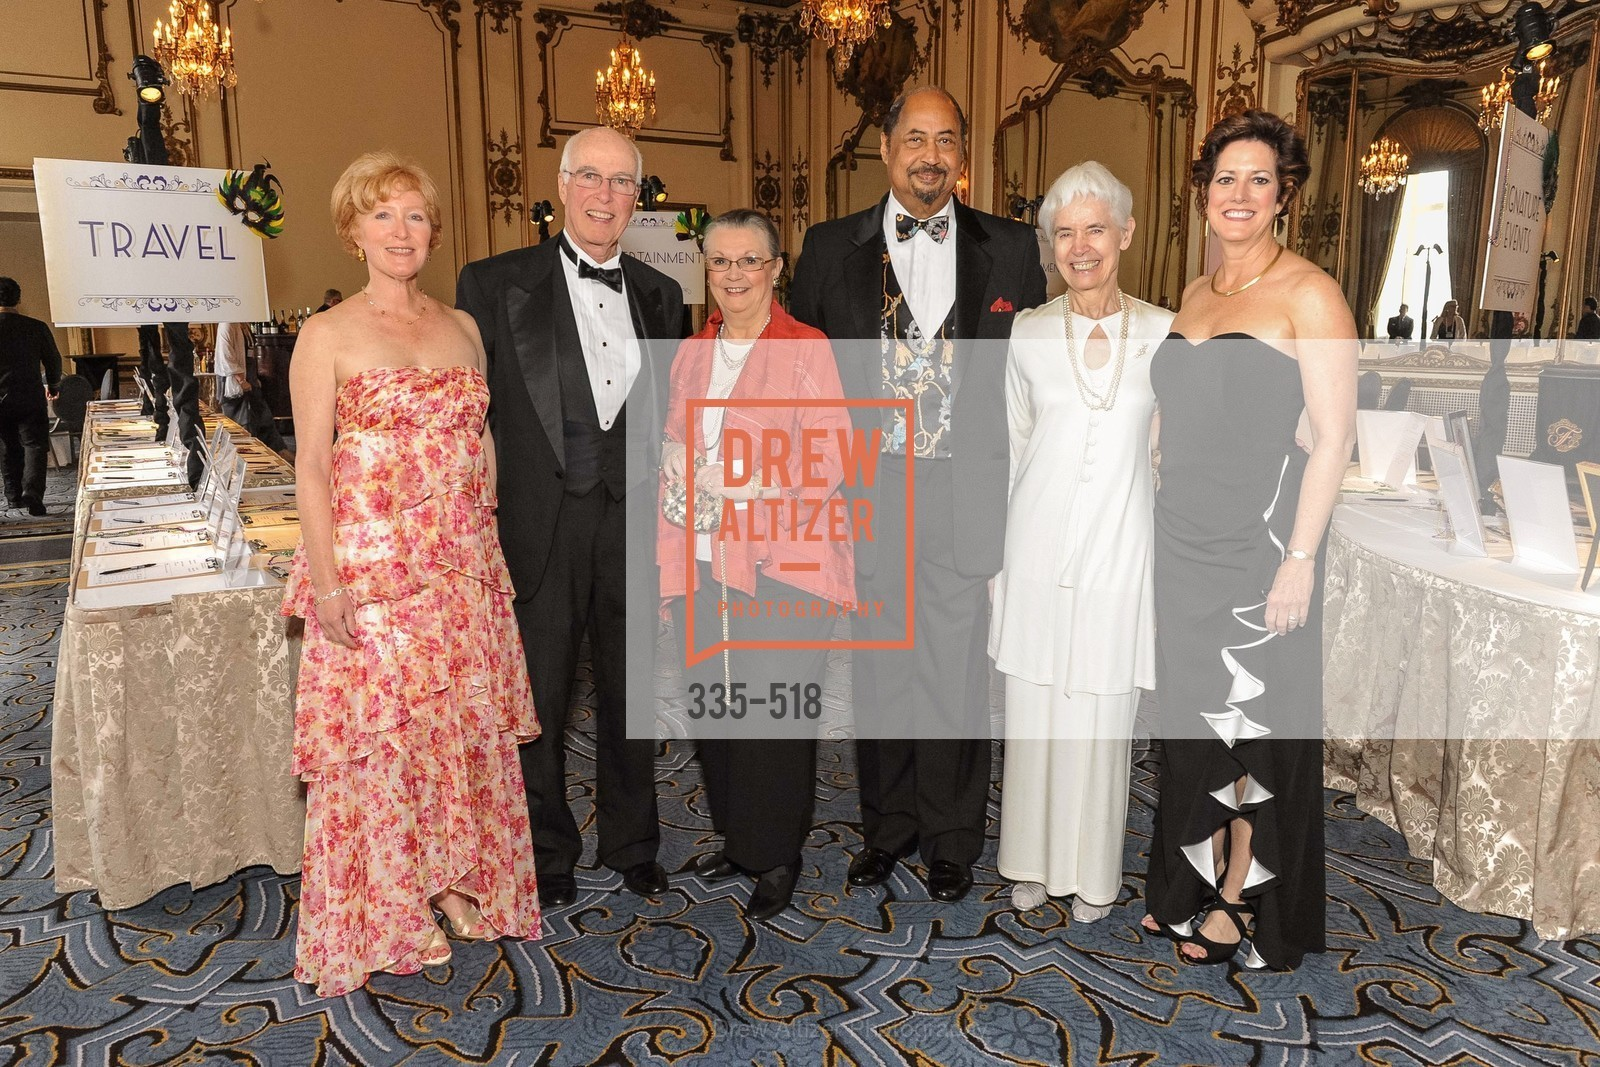 Carlyn Clause, David Hugle, Donna Blacker, Conrad Sweeting, Jayne Davis, Jean Kellogg, MEROLA OPERA Spring Benefit 2014:  A Night in New Orleans, US. Fairmont, April 12th, 2014,Drew Altizer, Drew Altizer Photography, full-service agency, private events, San Francisco photographer, photographer california